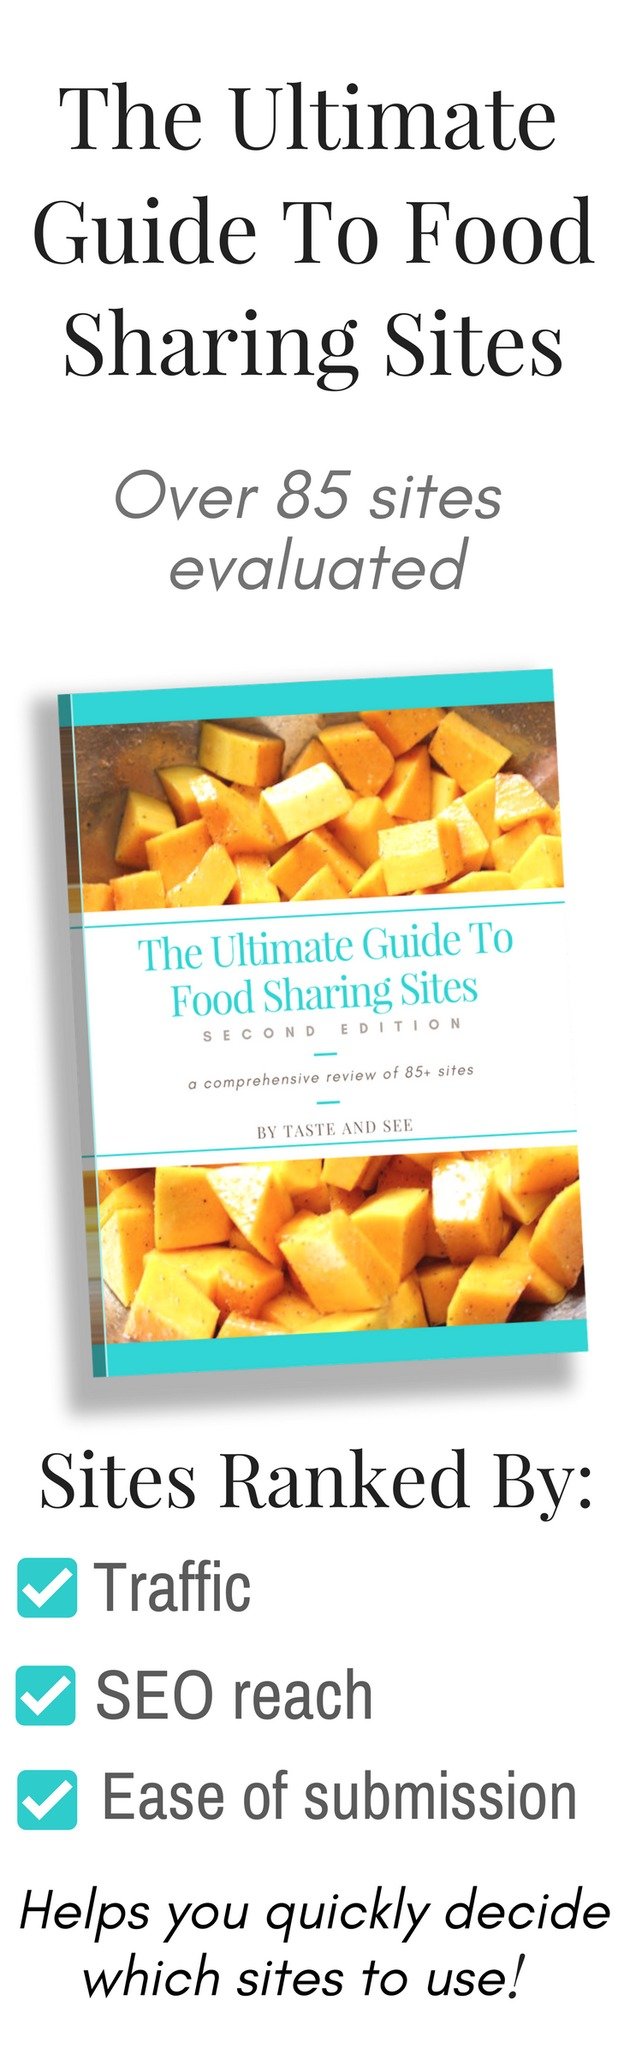 The Ultimate Guide to Food Sharing Sites 3rd Edition: 80+ FoodGawker-style sites evaluated & ranked for food bloggers.  A must-have resource!